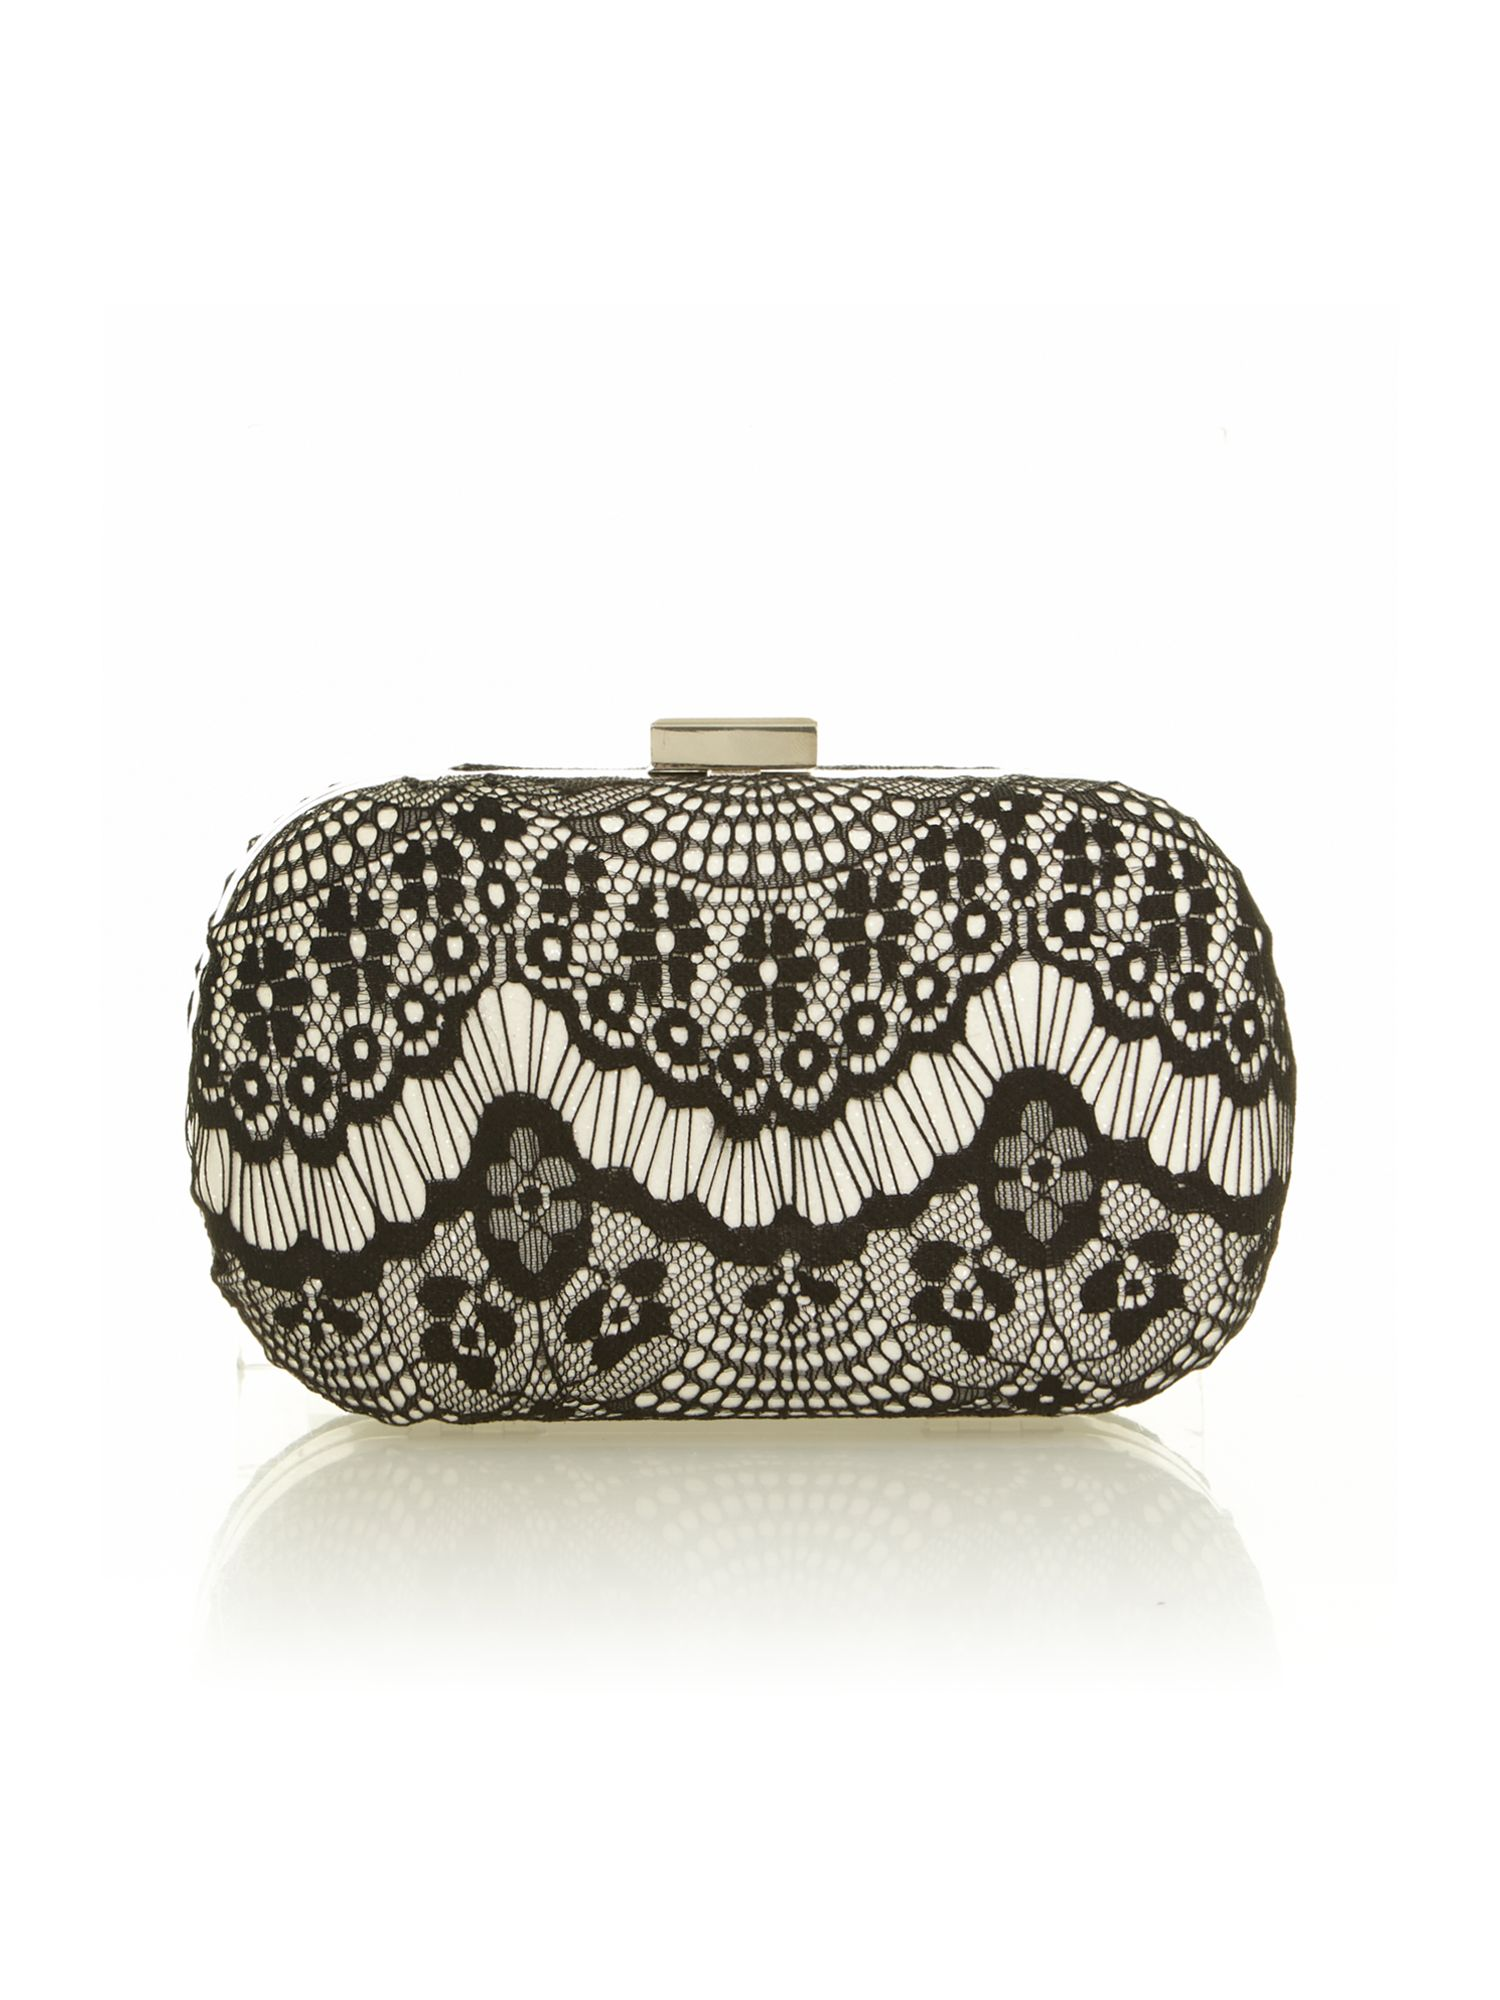 Rock lace box clutch